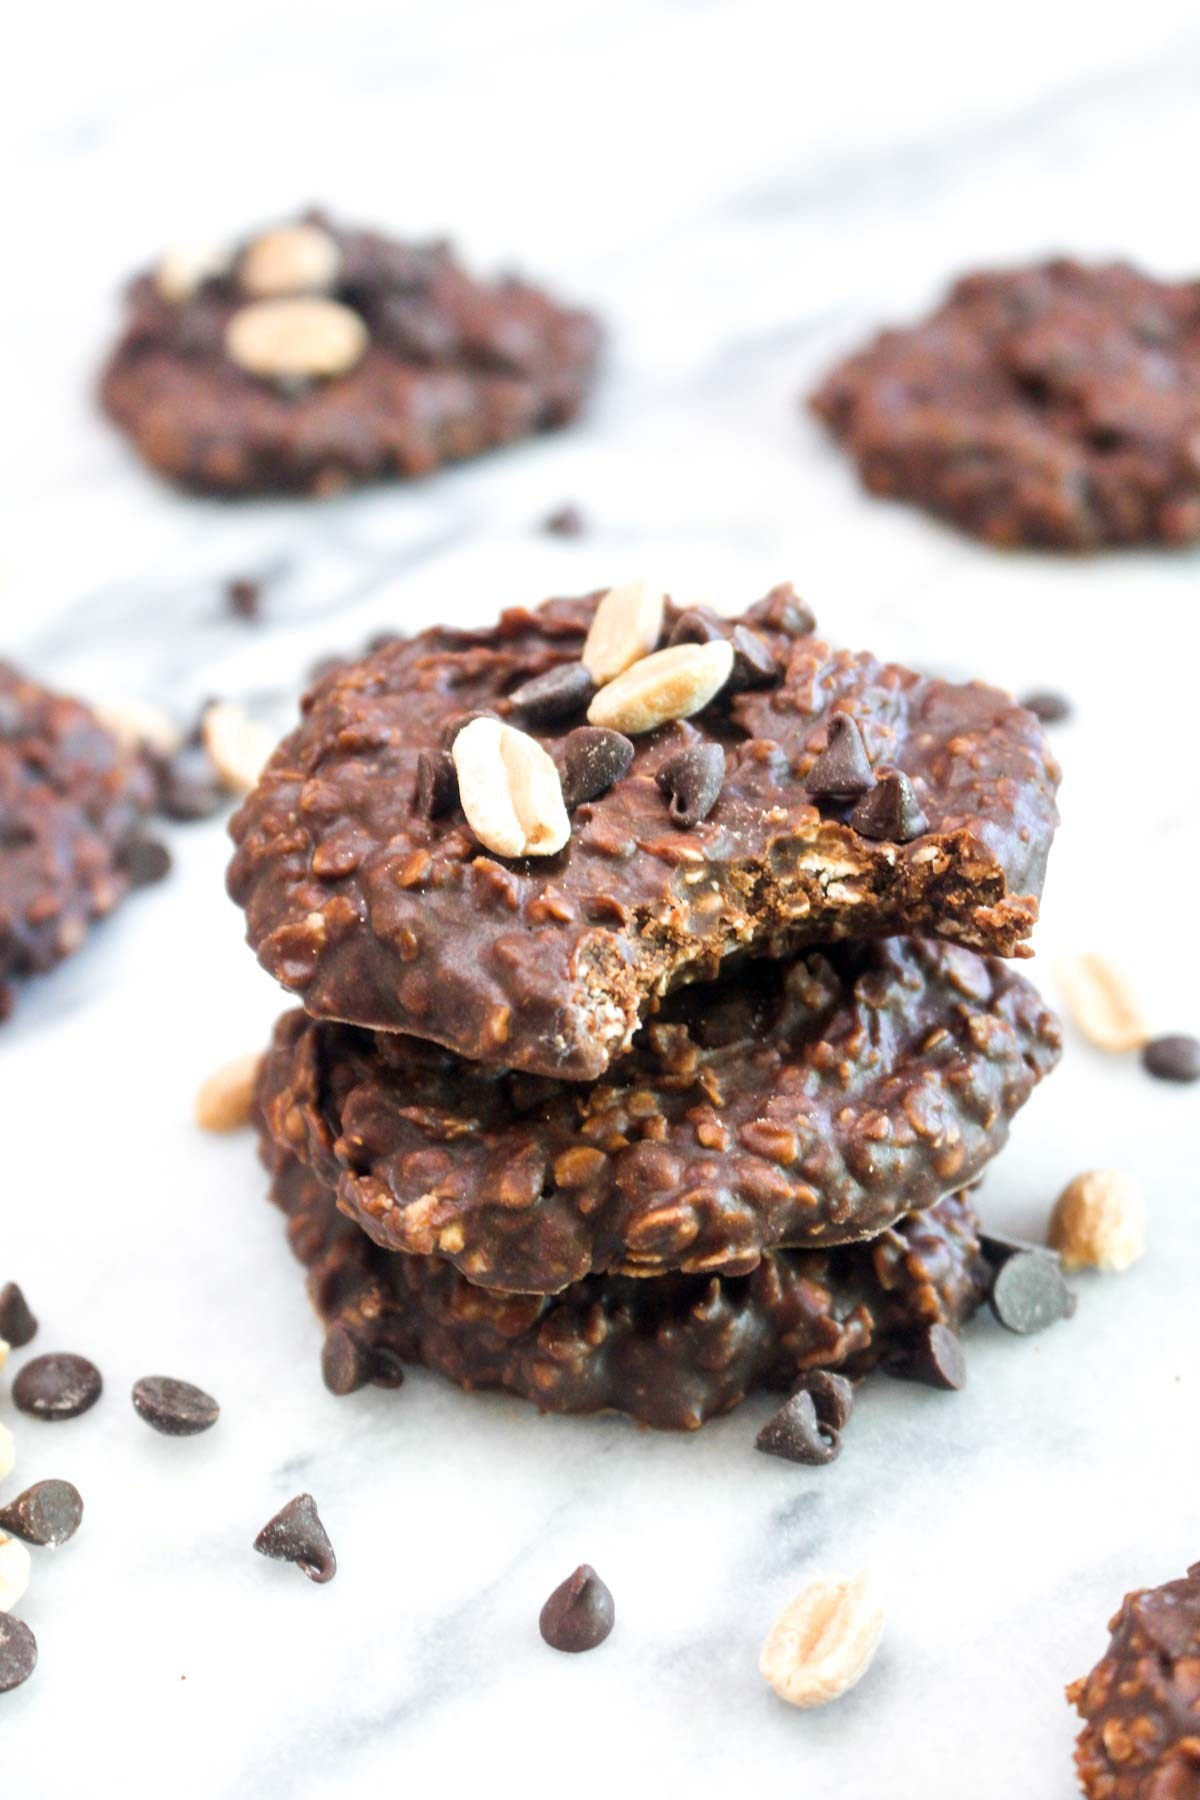 Healthy Chocolate Peanut Butter Cookies  Healthy Chocolate Peanut Butter No Bake Cookies Catching